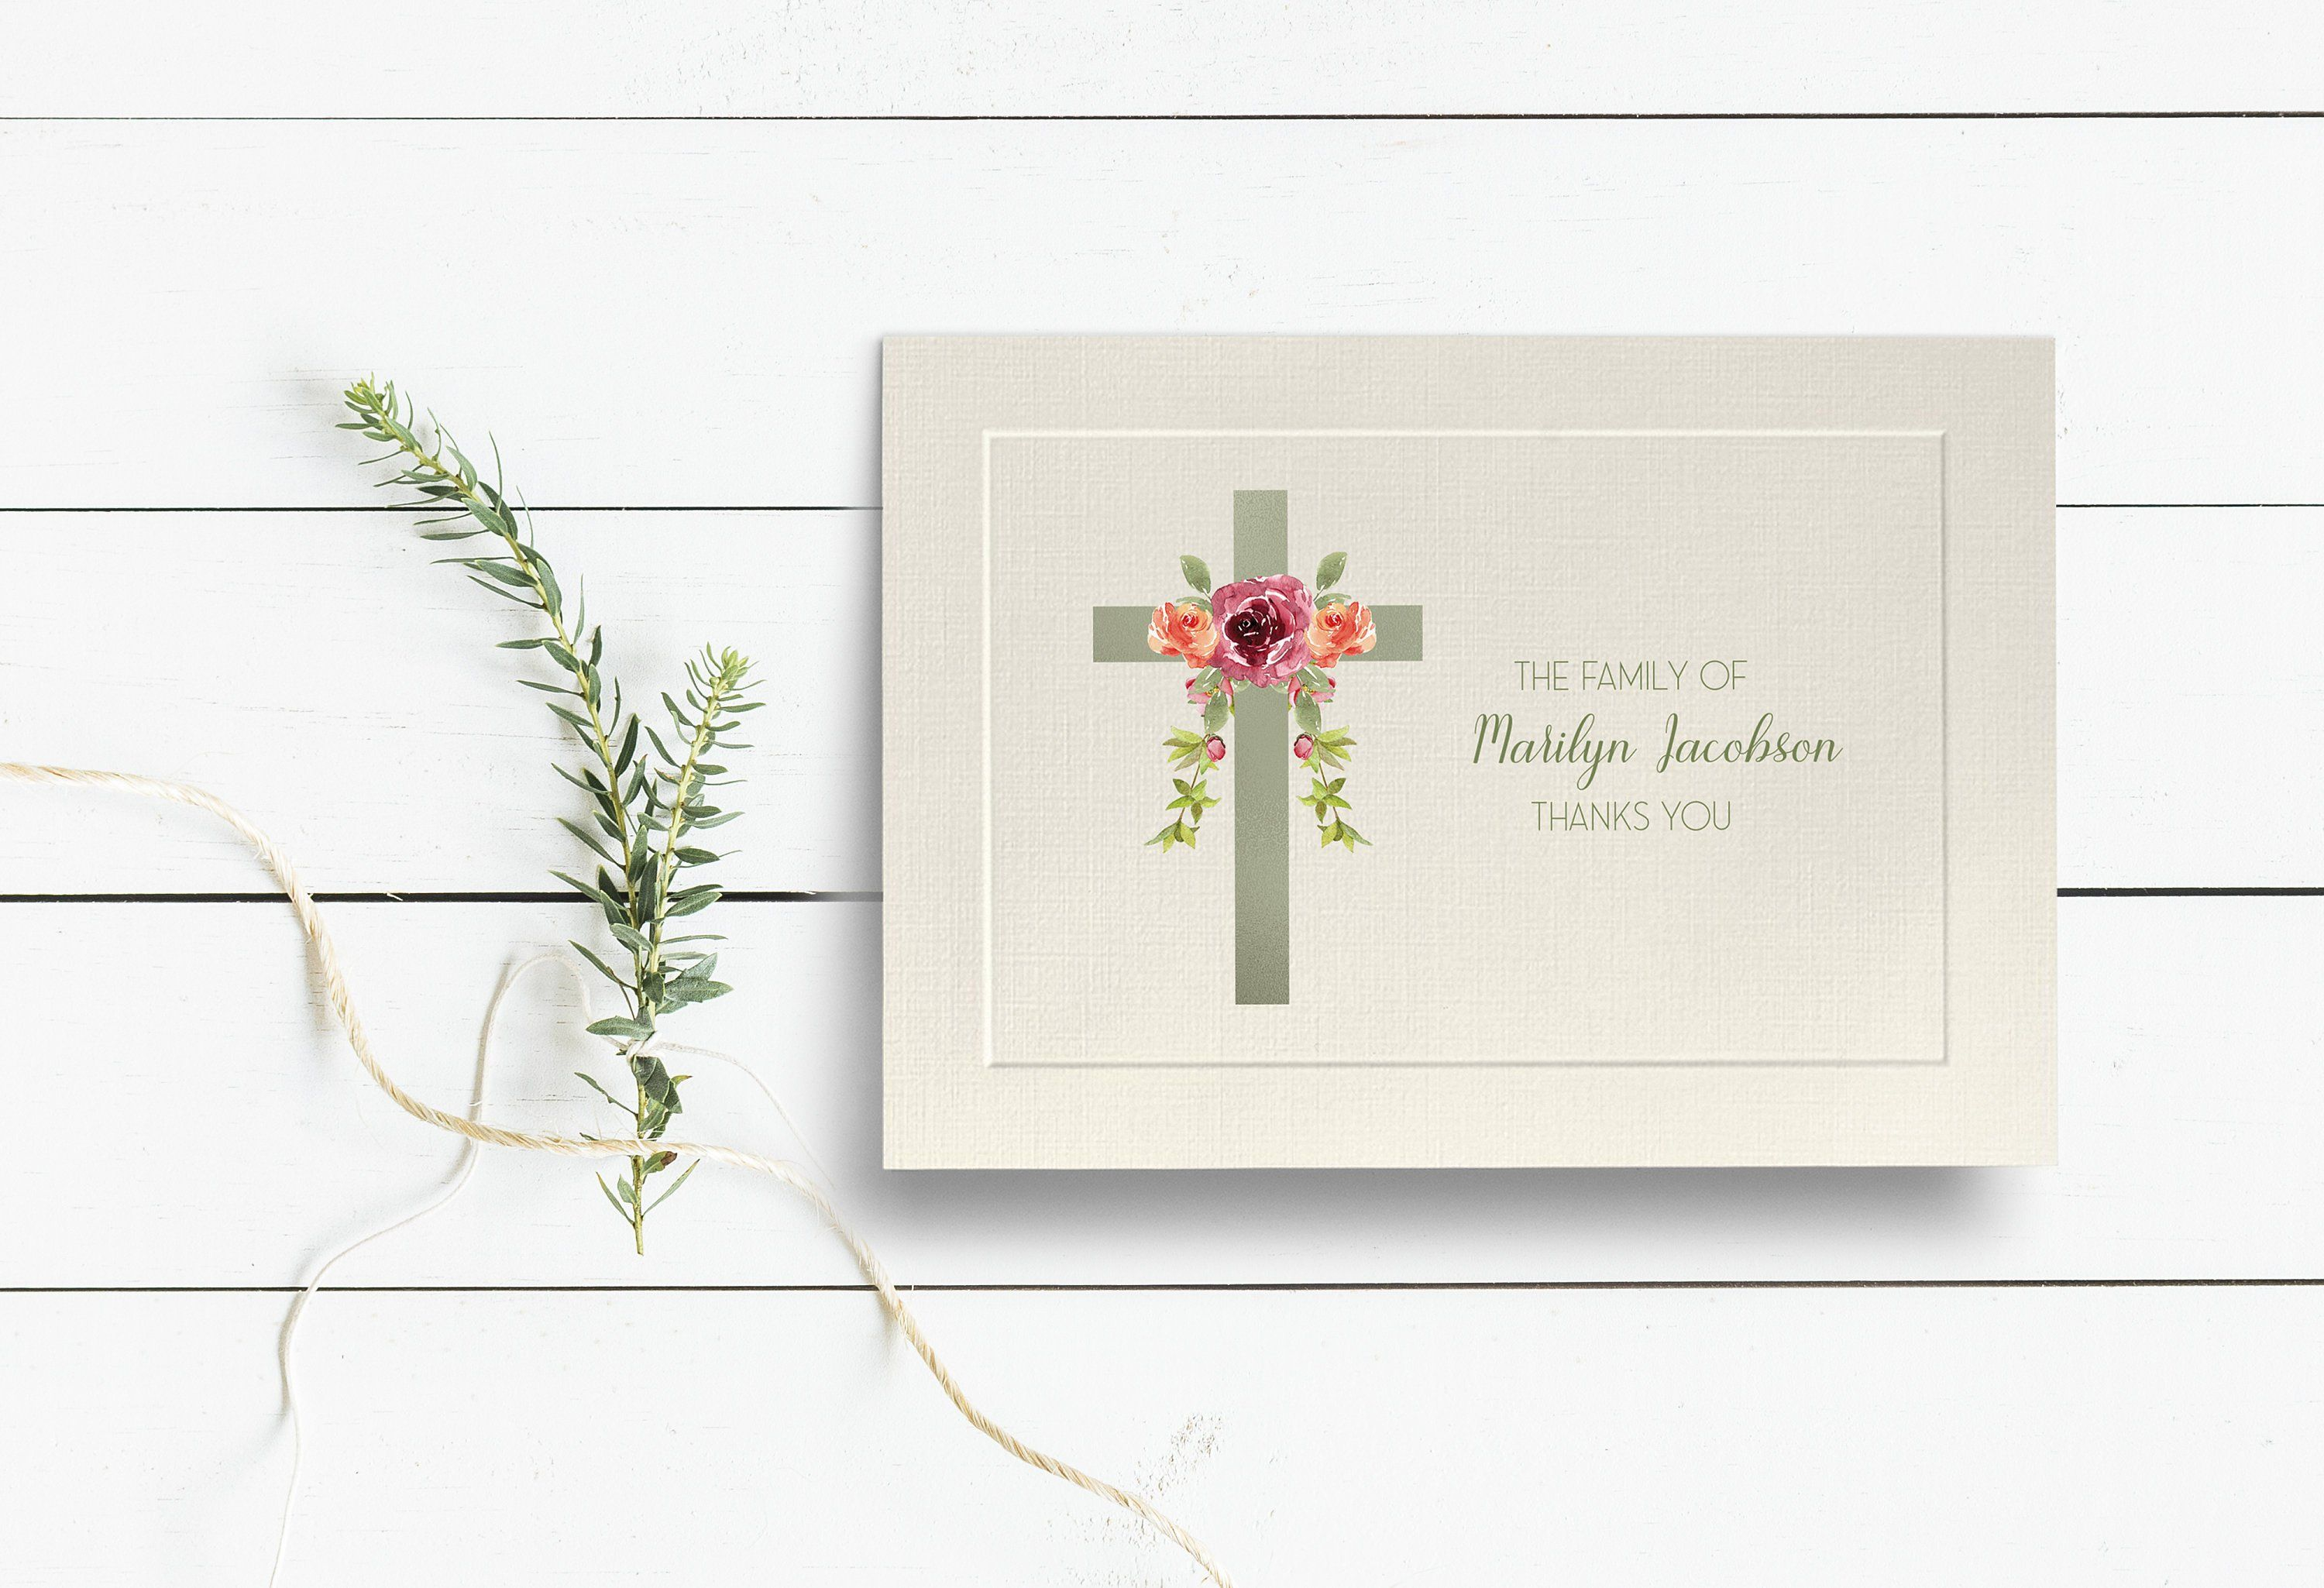 Custom Thank You Card Thank You Family of Stationery Letter Writing Stationary From the Family of Stationary Thank You Condolence Card